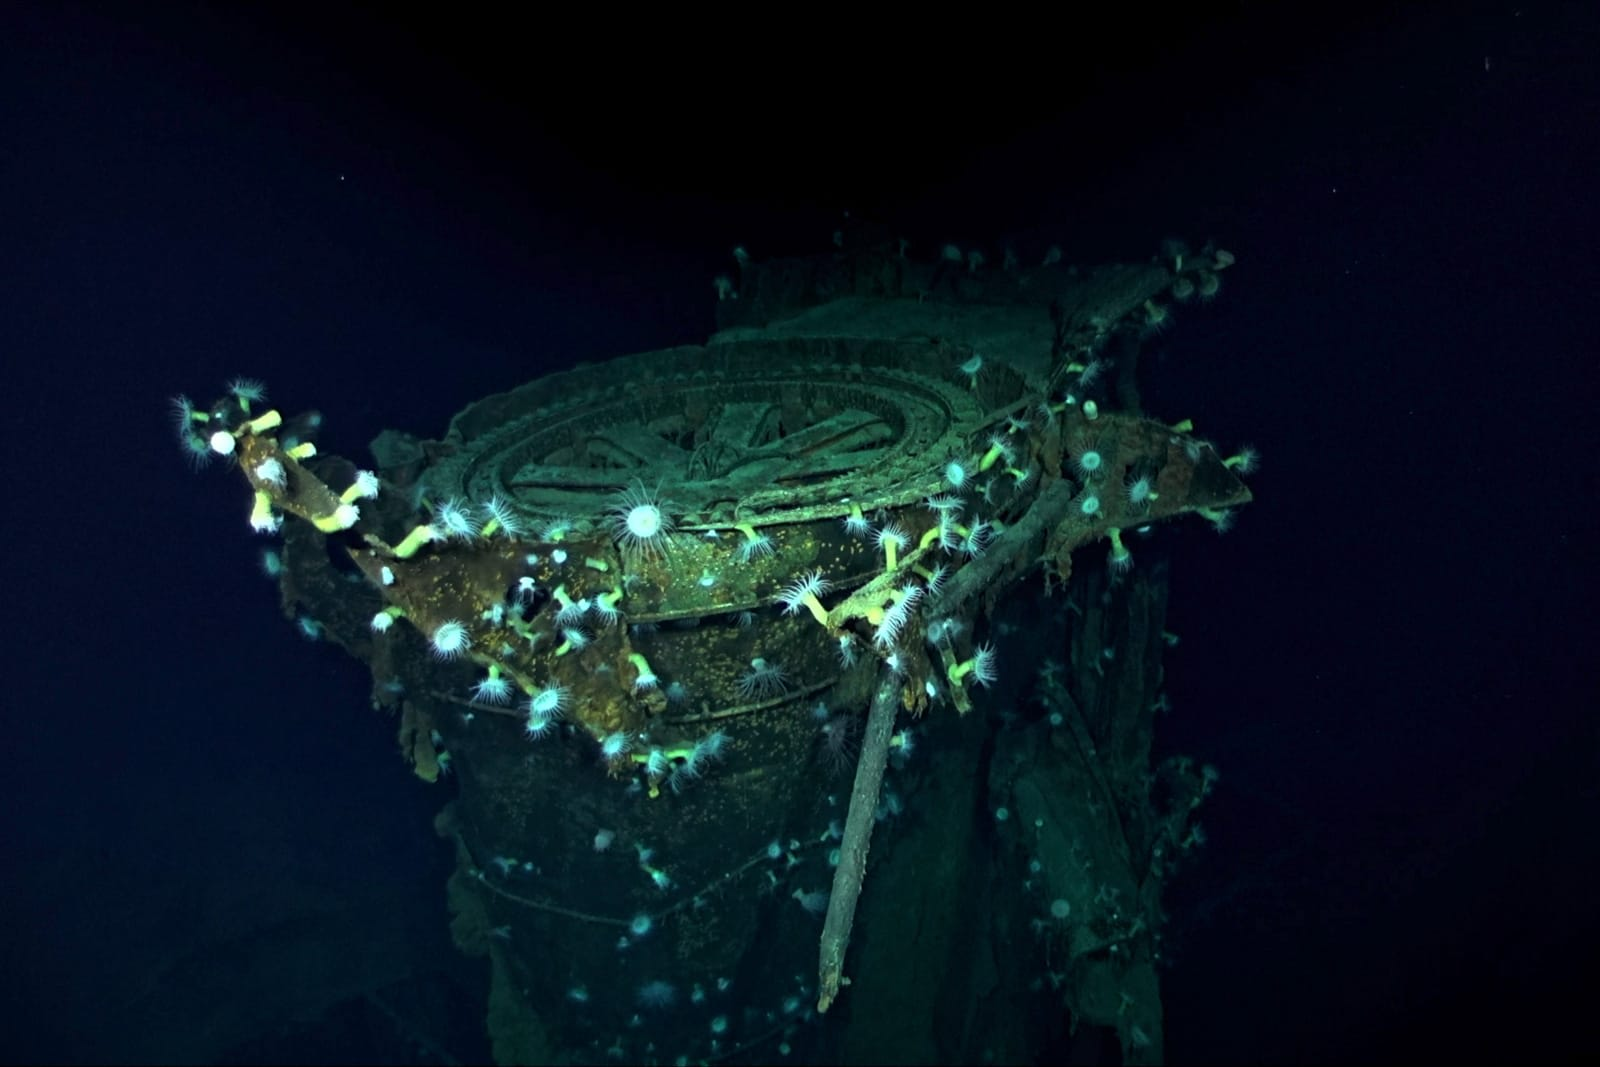 Sonar drone helps find a WWII Japanese aircraft carrier